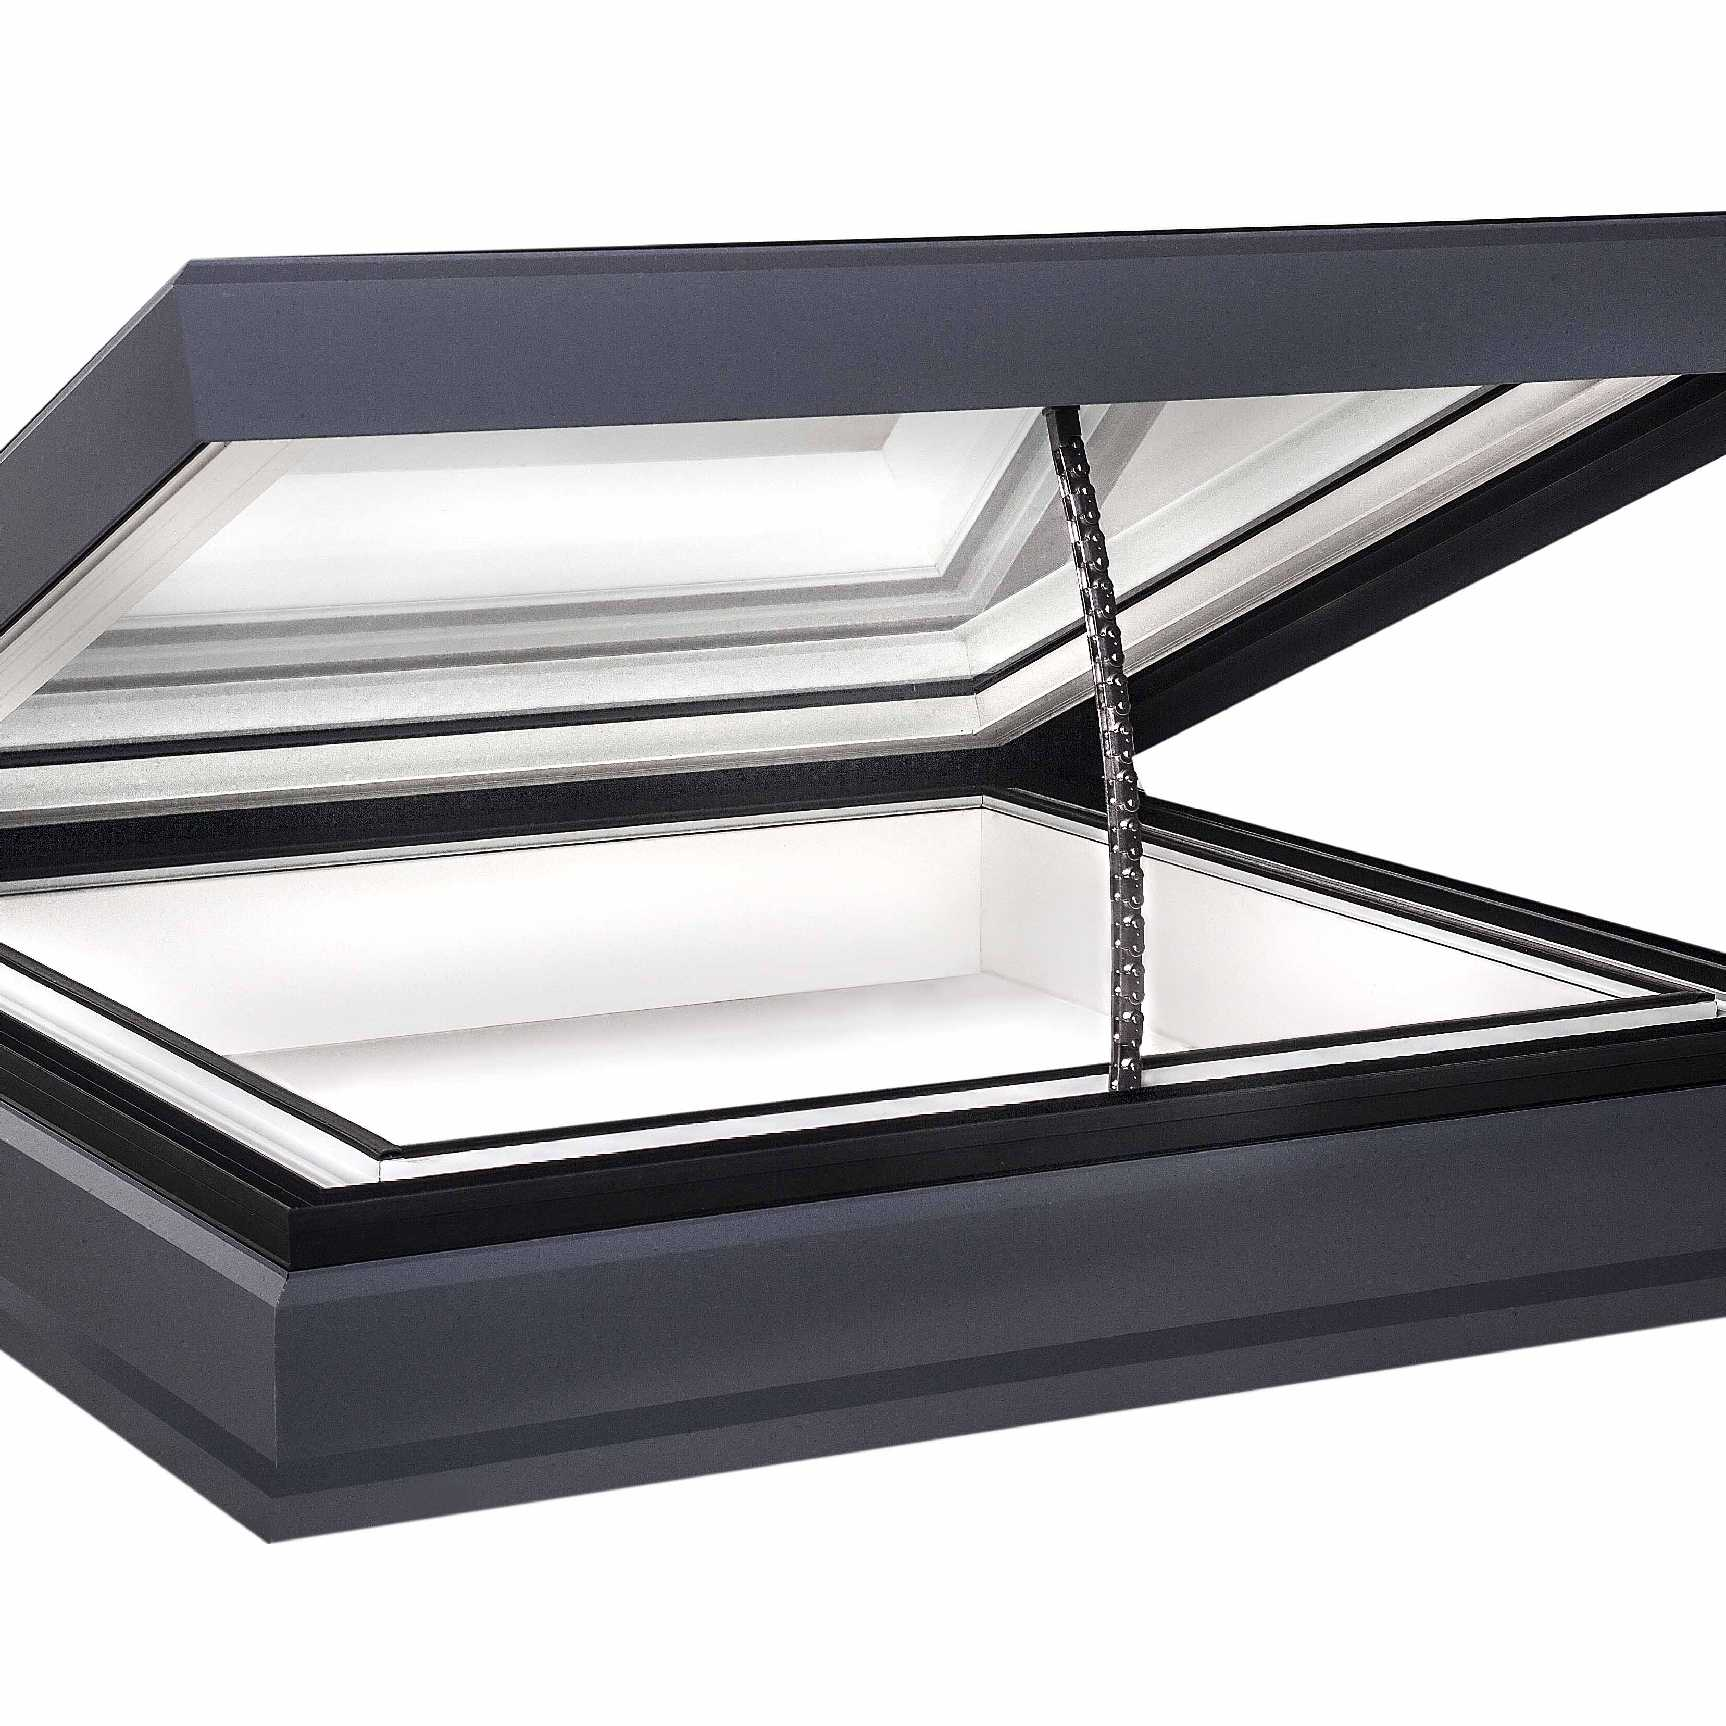 Affordable EcoGard Flat Roof light, Triple Glazed, Electric Opening, 1,000mm x 1,500mm